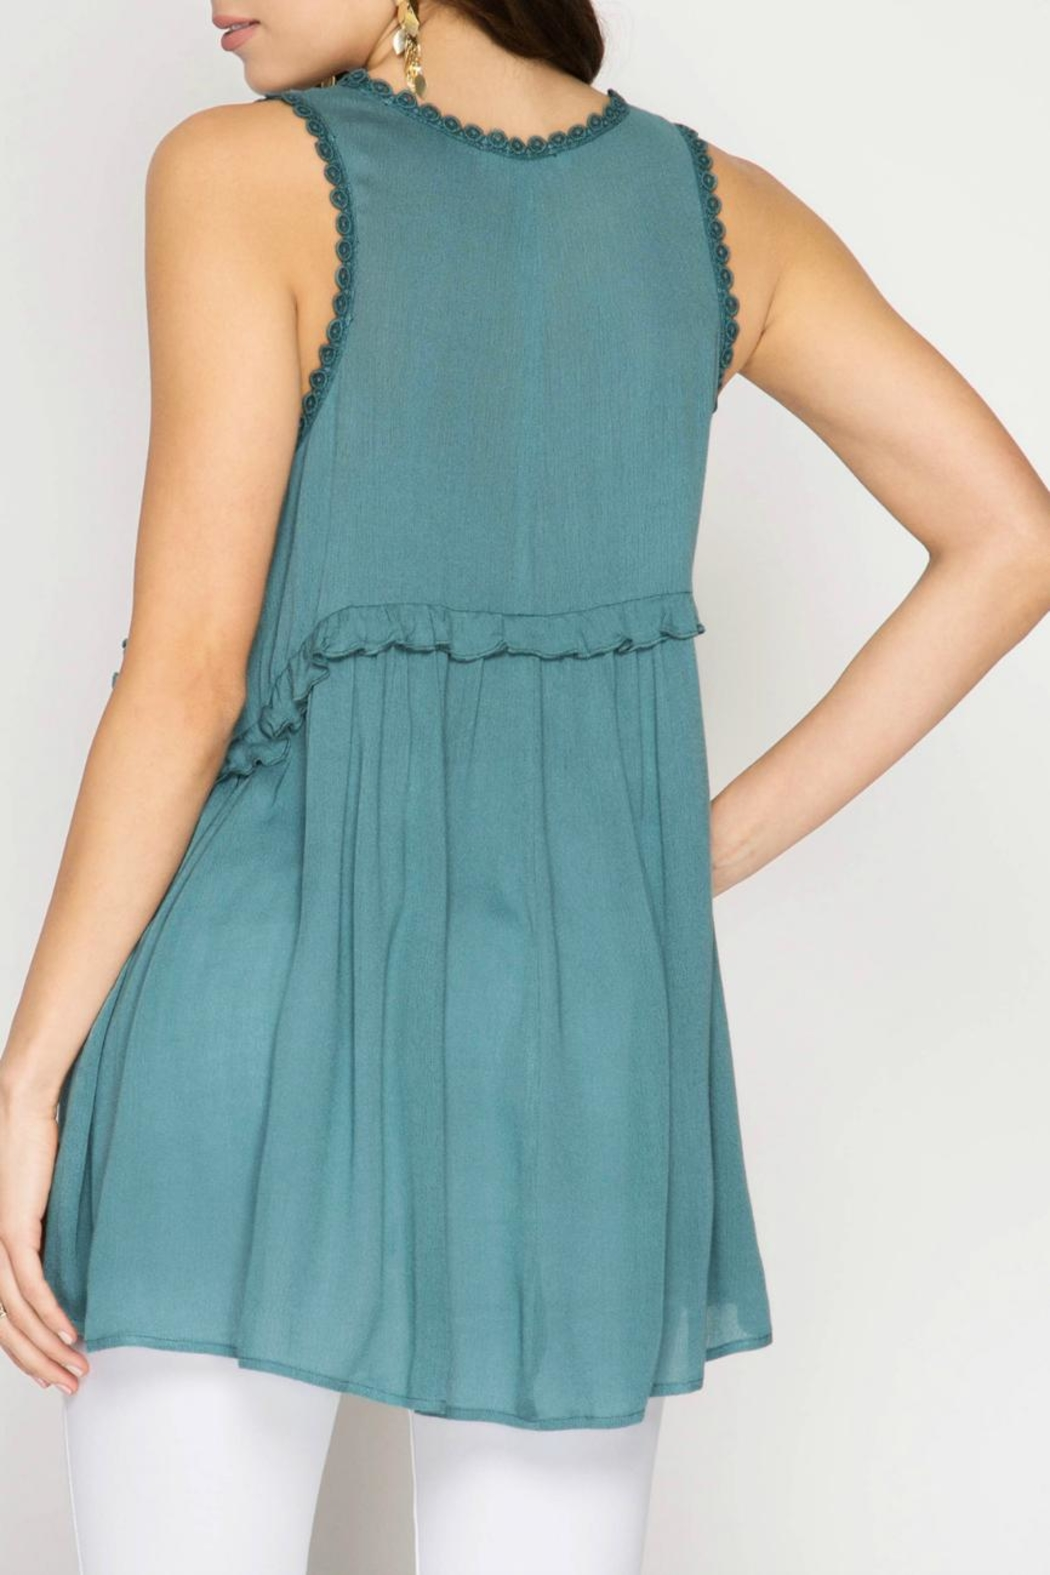 She + Sky Embroidered Tunic Top - Back Cropped Image